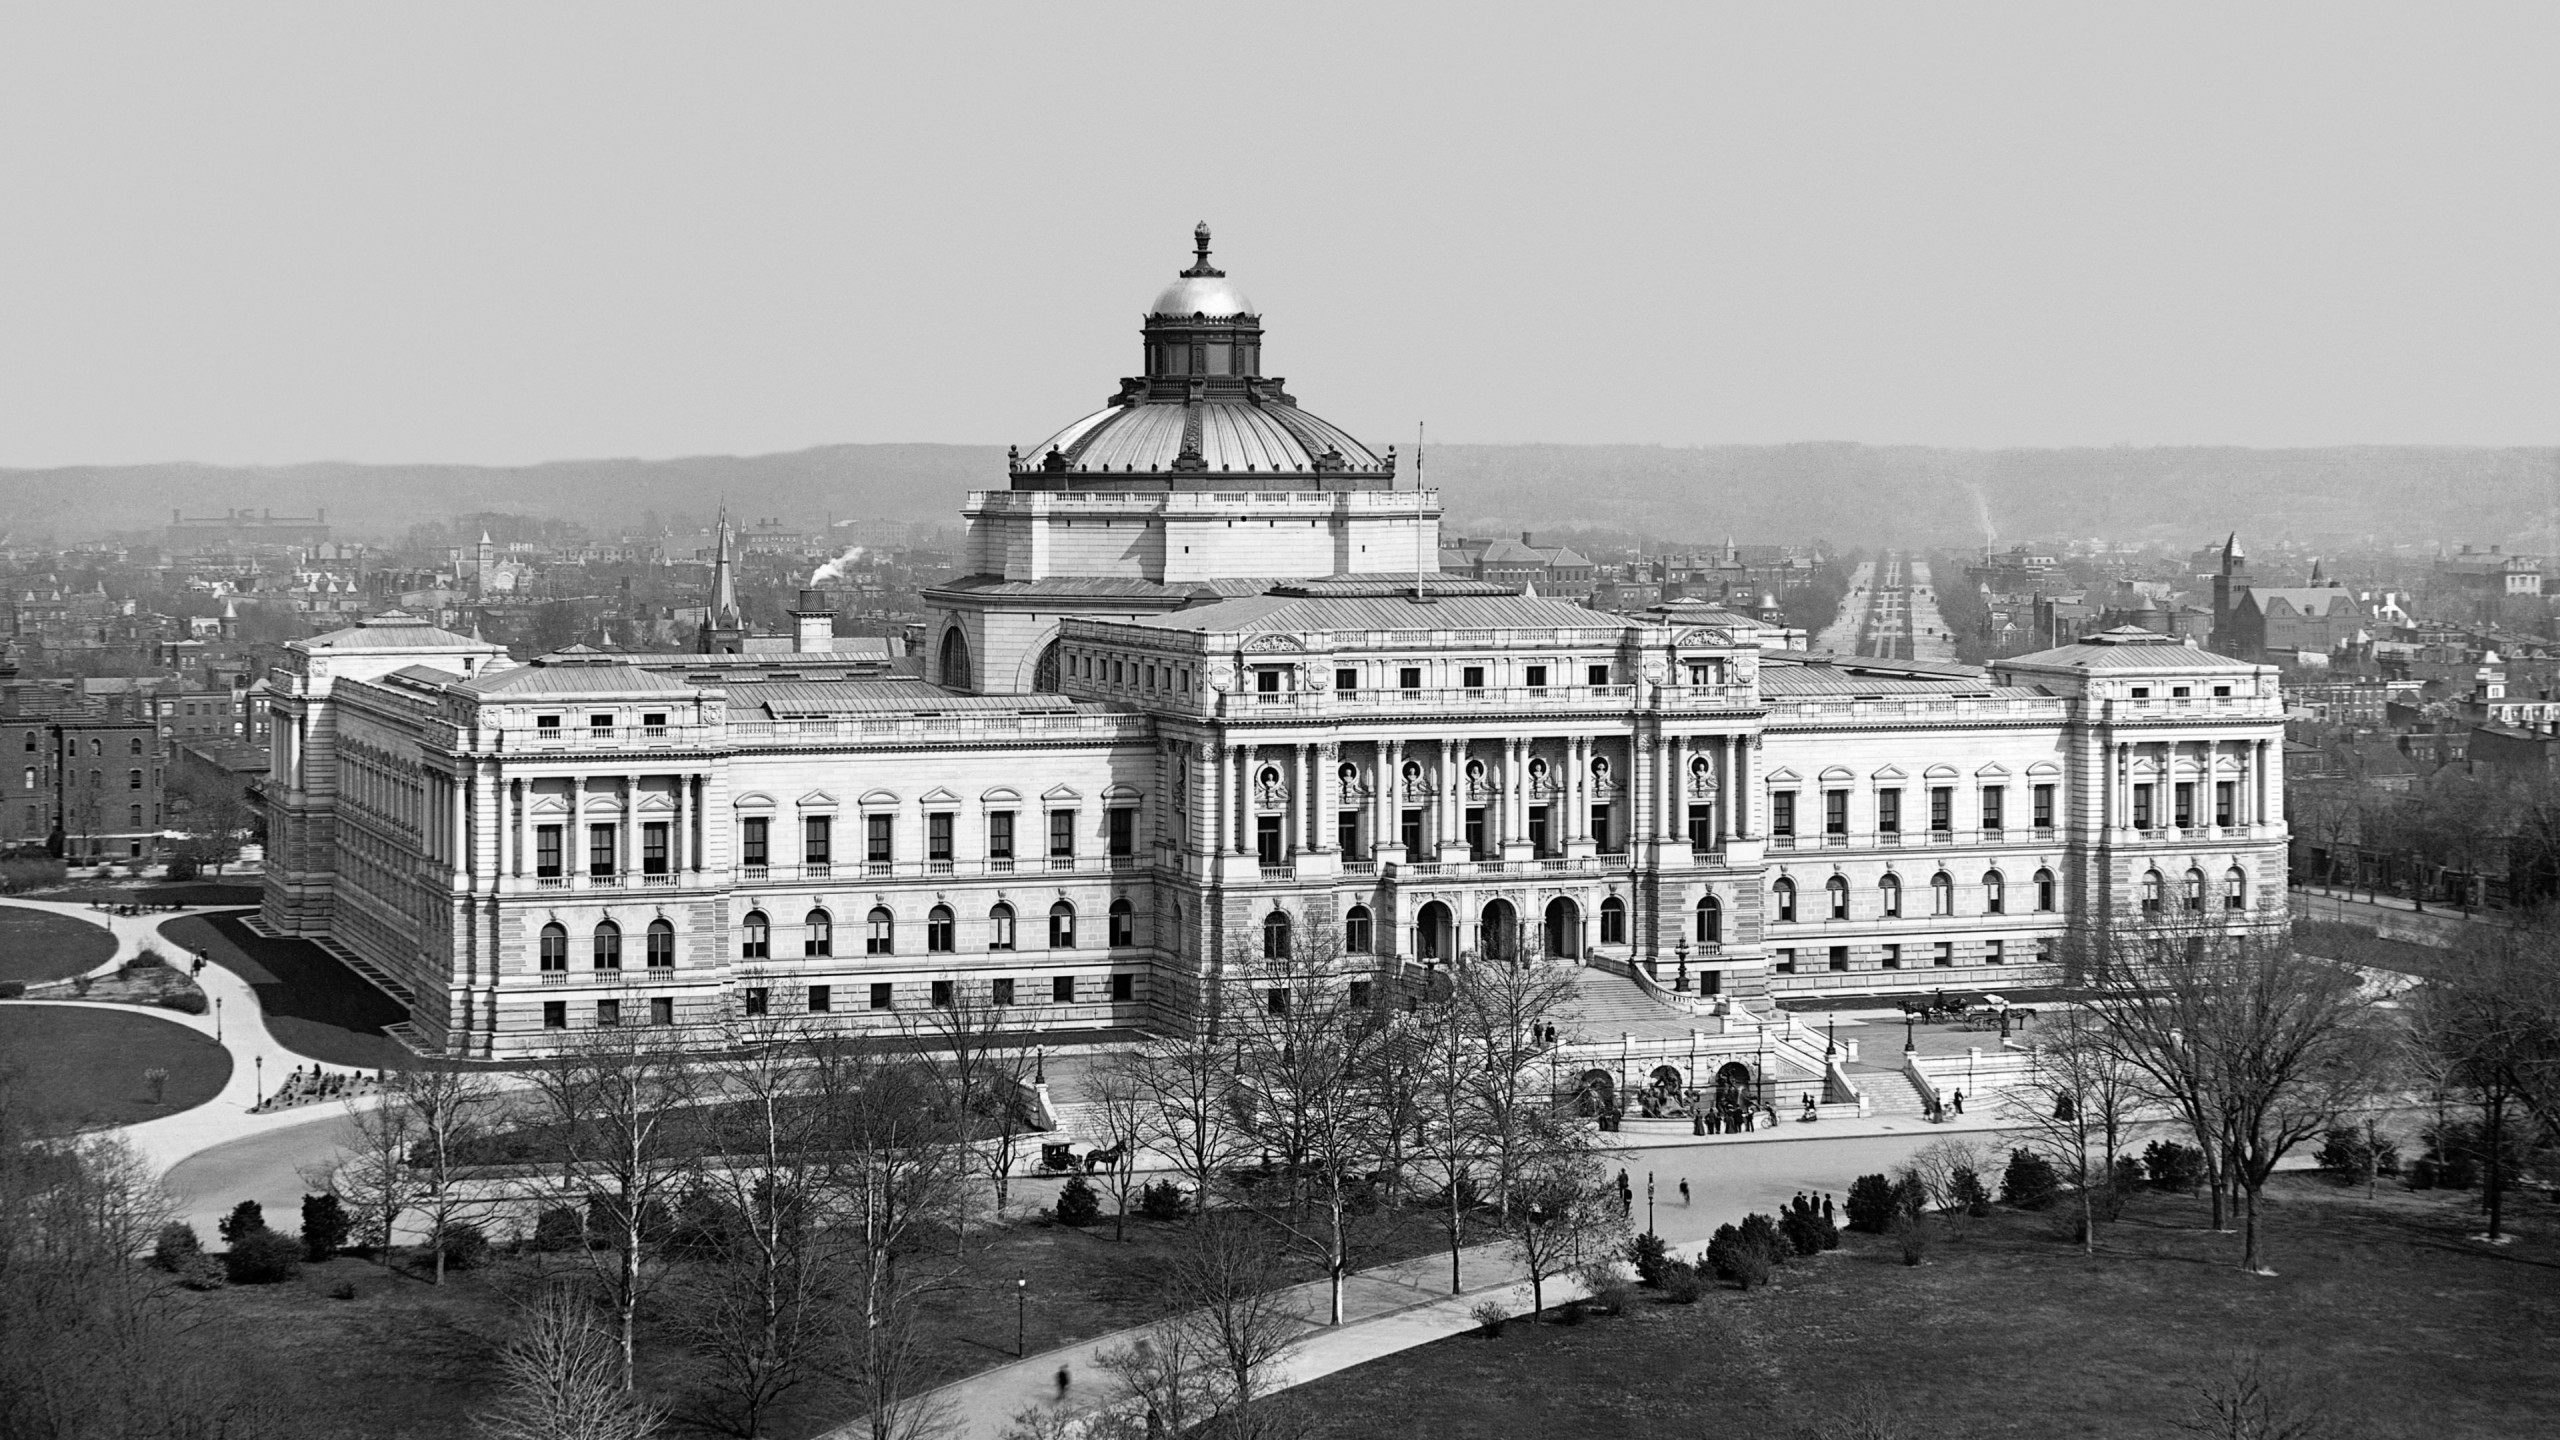 Thomas Jefferson Building, year 1902, Washington, D.C. Wallpaper for Social Media YouTube Channel Art